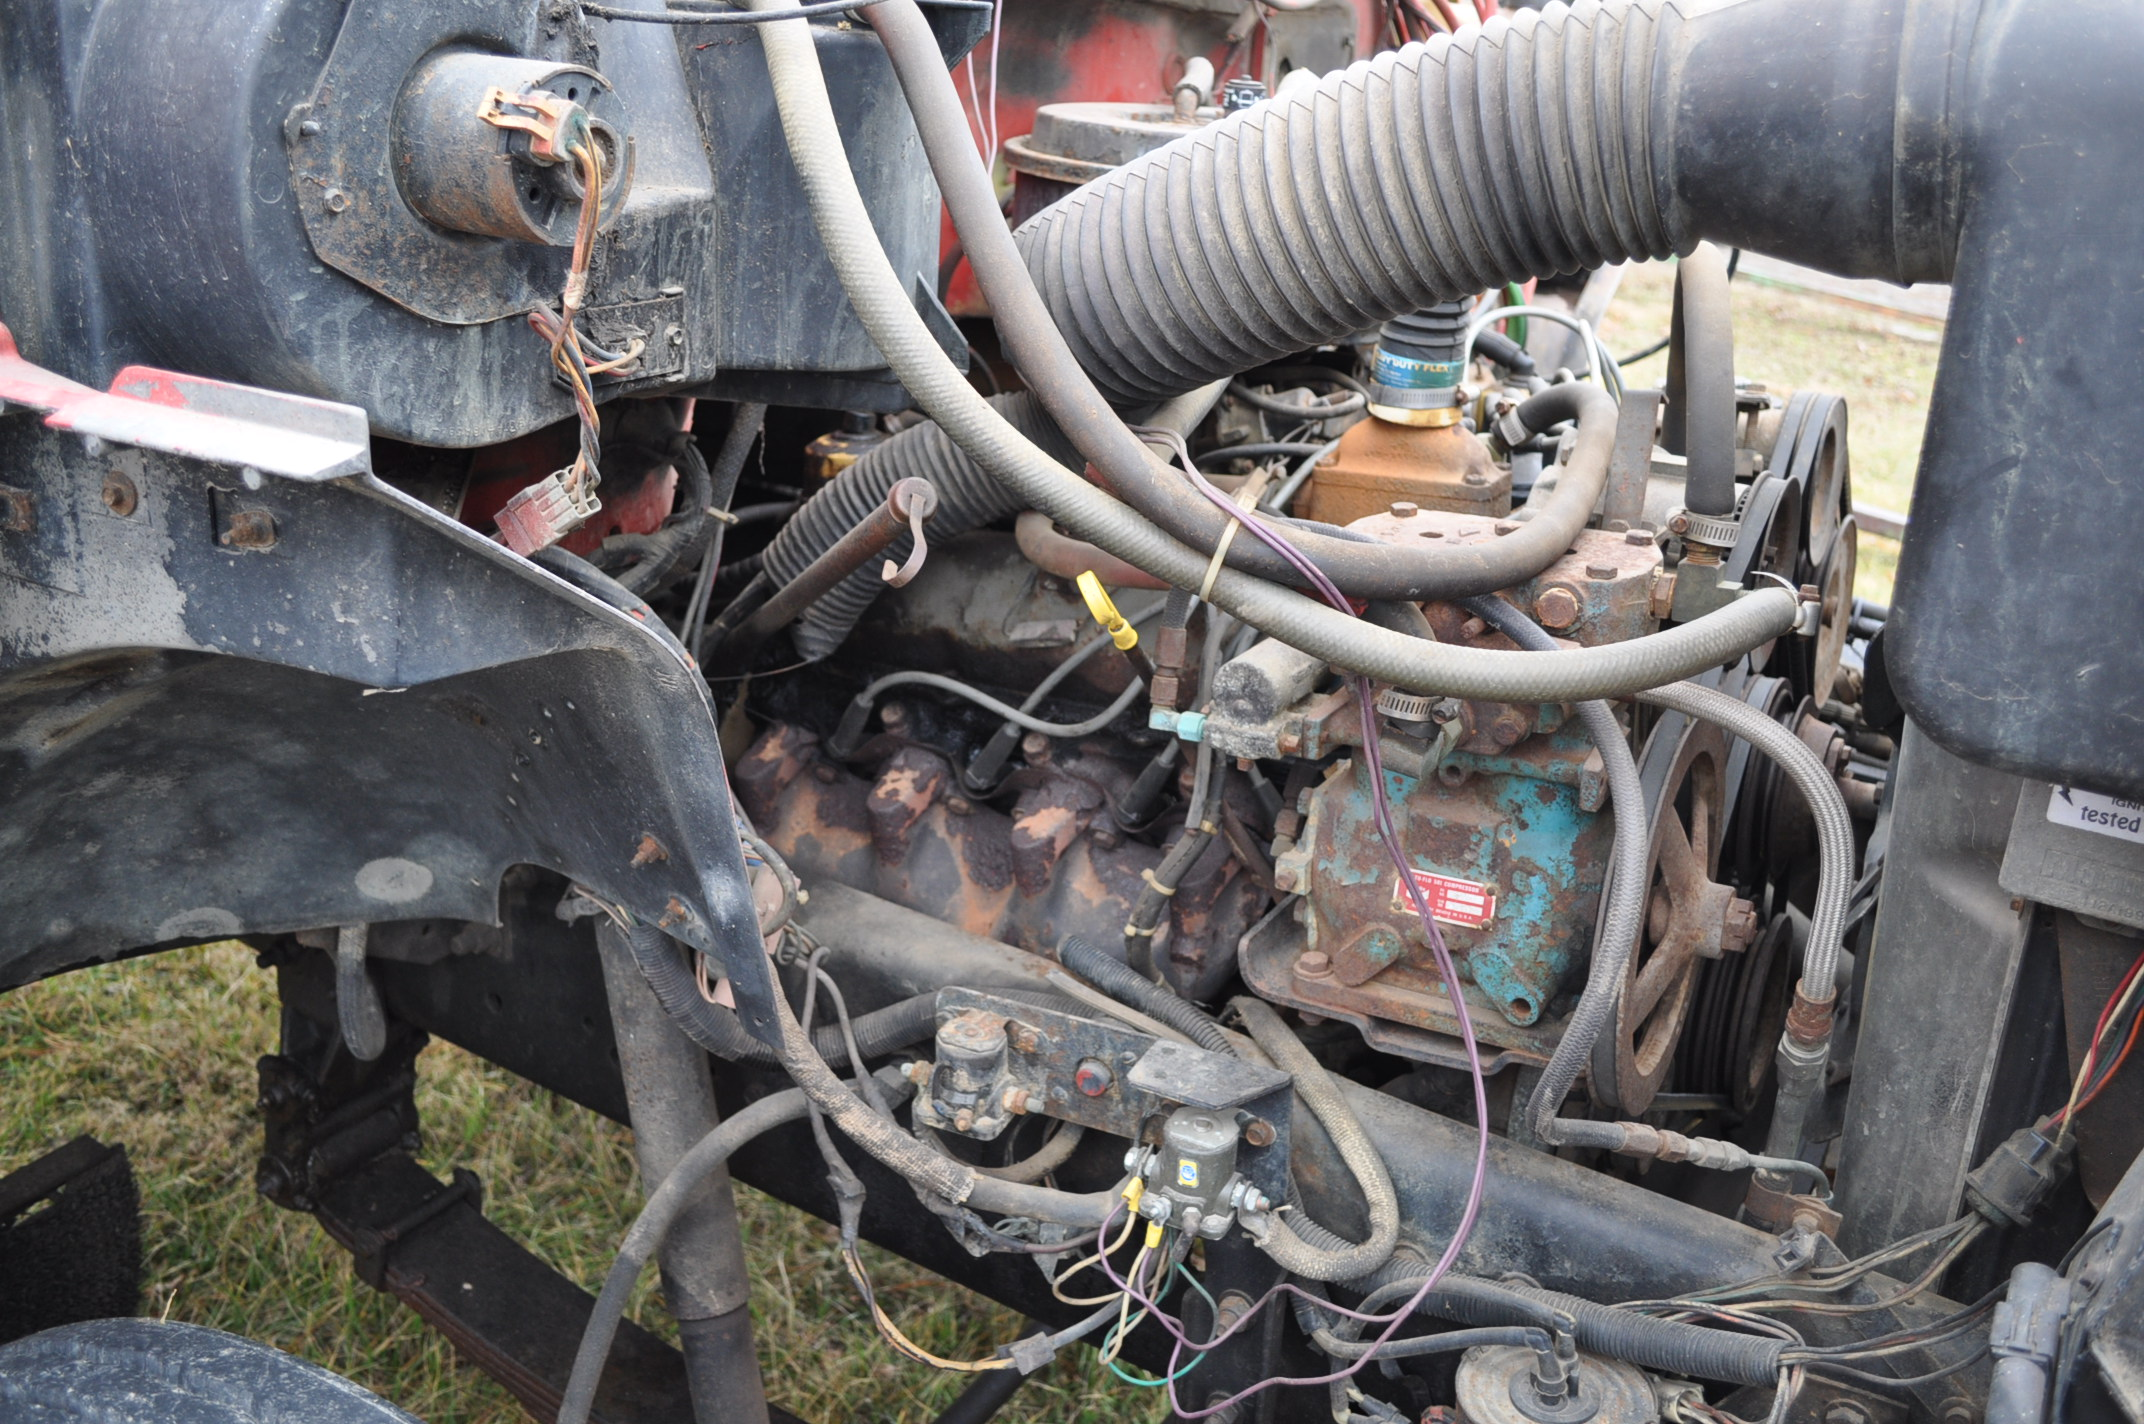 1988 Ford F800 grain truck, single axle, 427 V-8, auto, 11 R 22.5 tires, 16' Omaha Standard bed, - Image 6 of 17